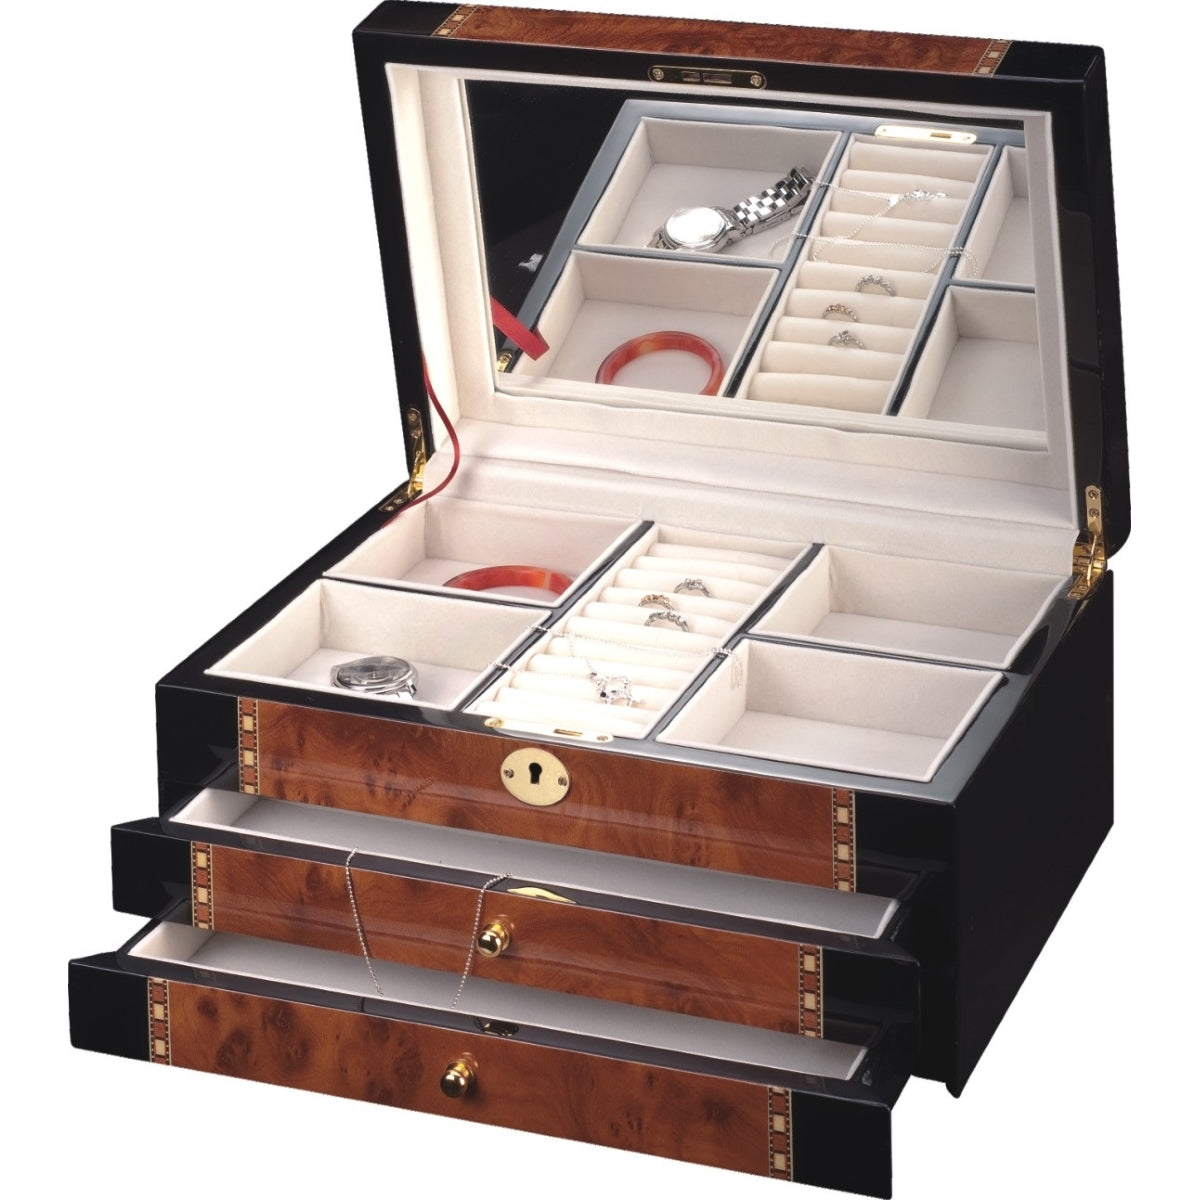 Pearl Time Large 2-Drawer Jewellery Box Piano Black with Brown 35cm Open PJ817A